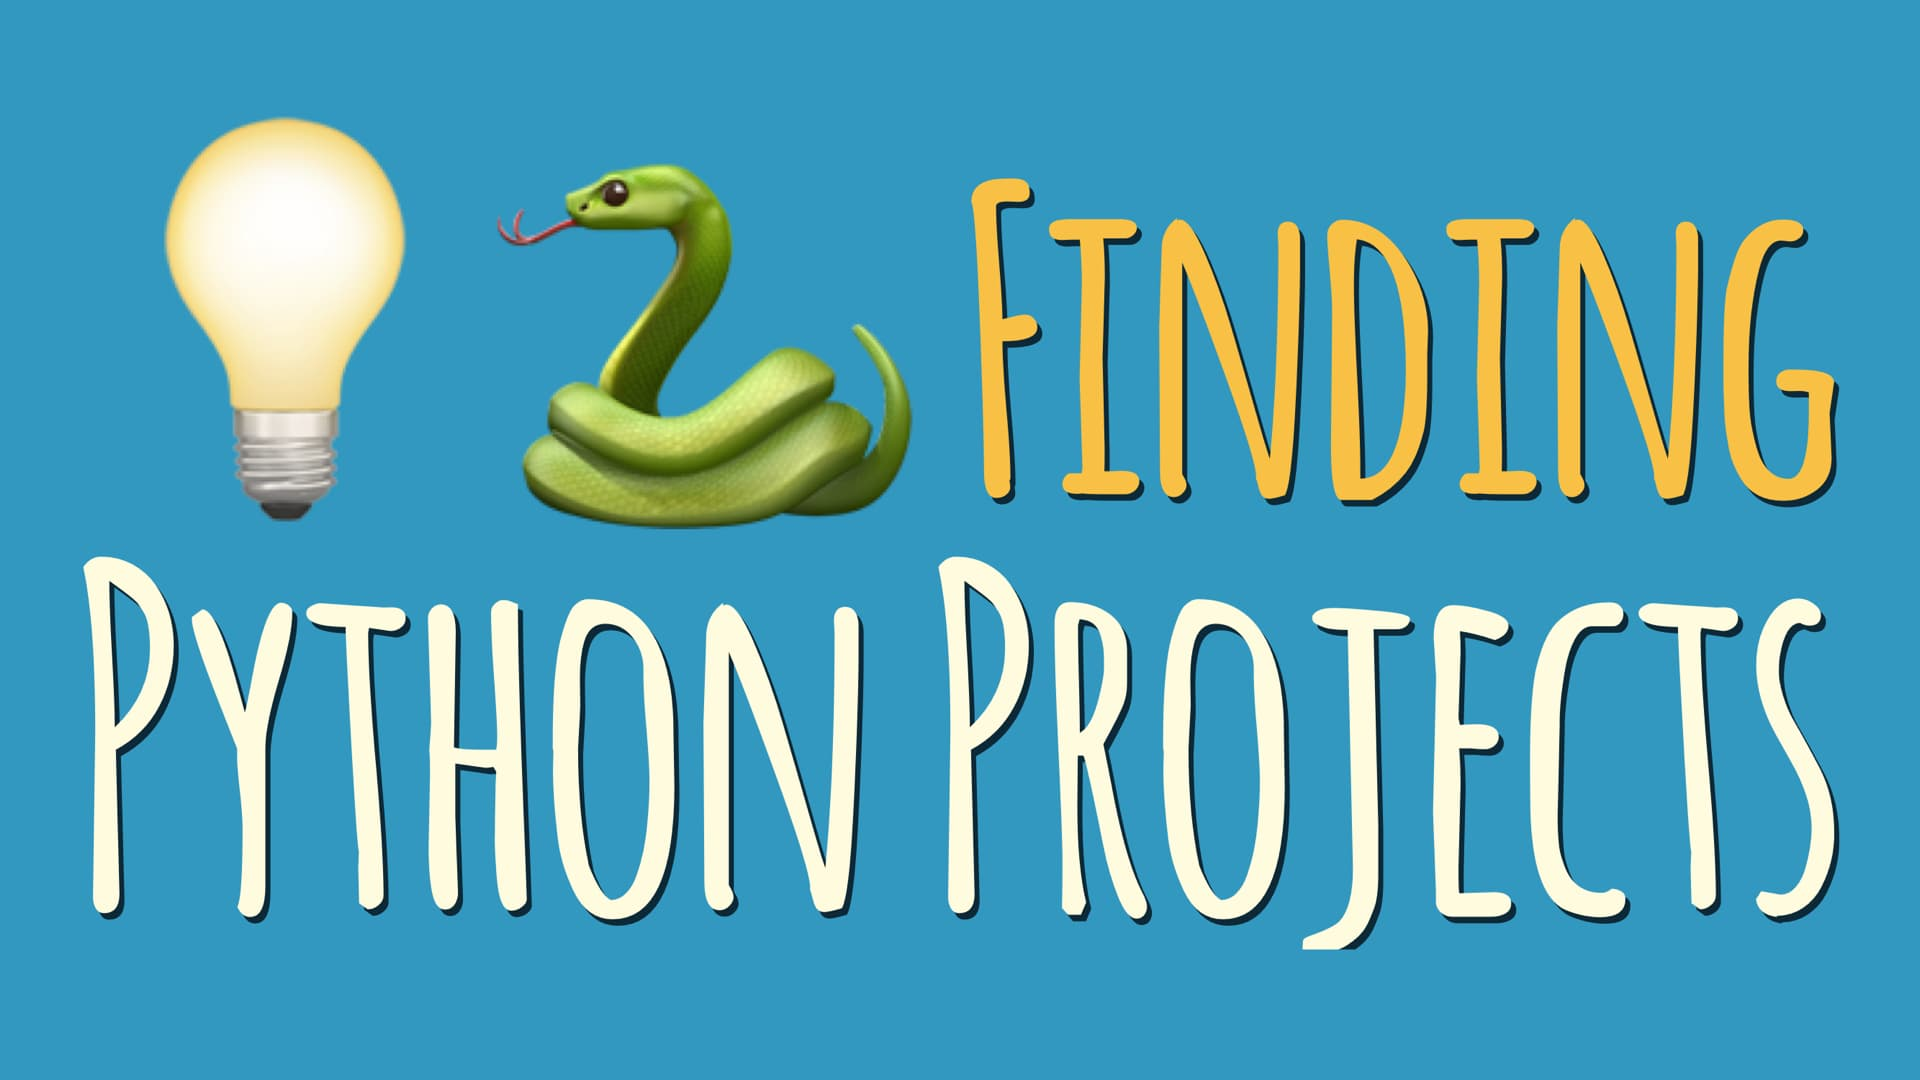 Finding Python Projects to Grow Your Programming Skills